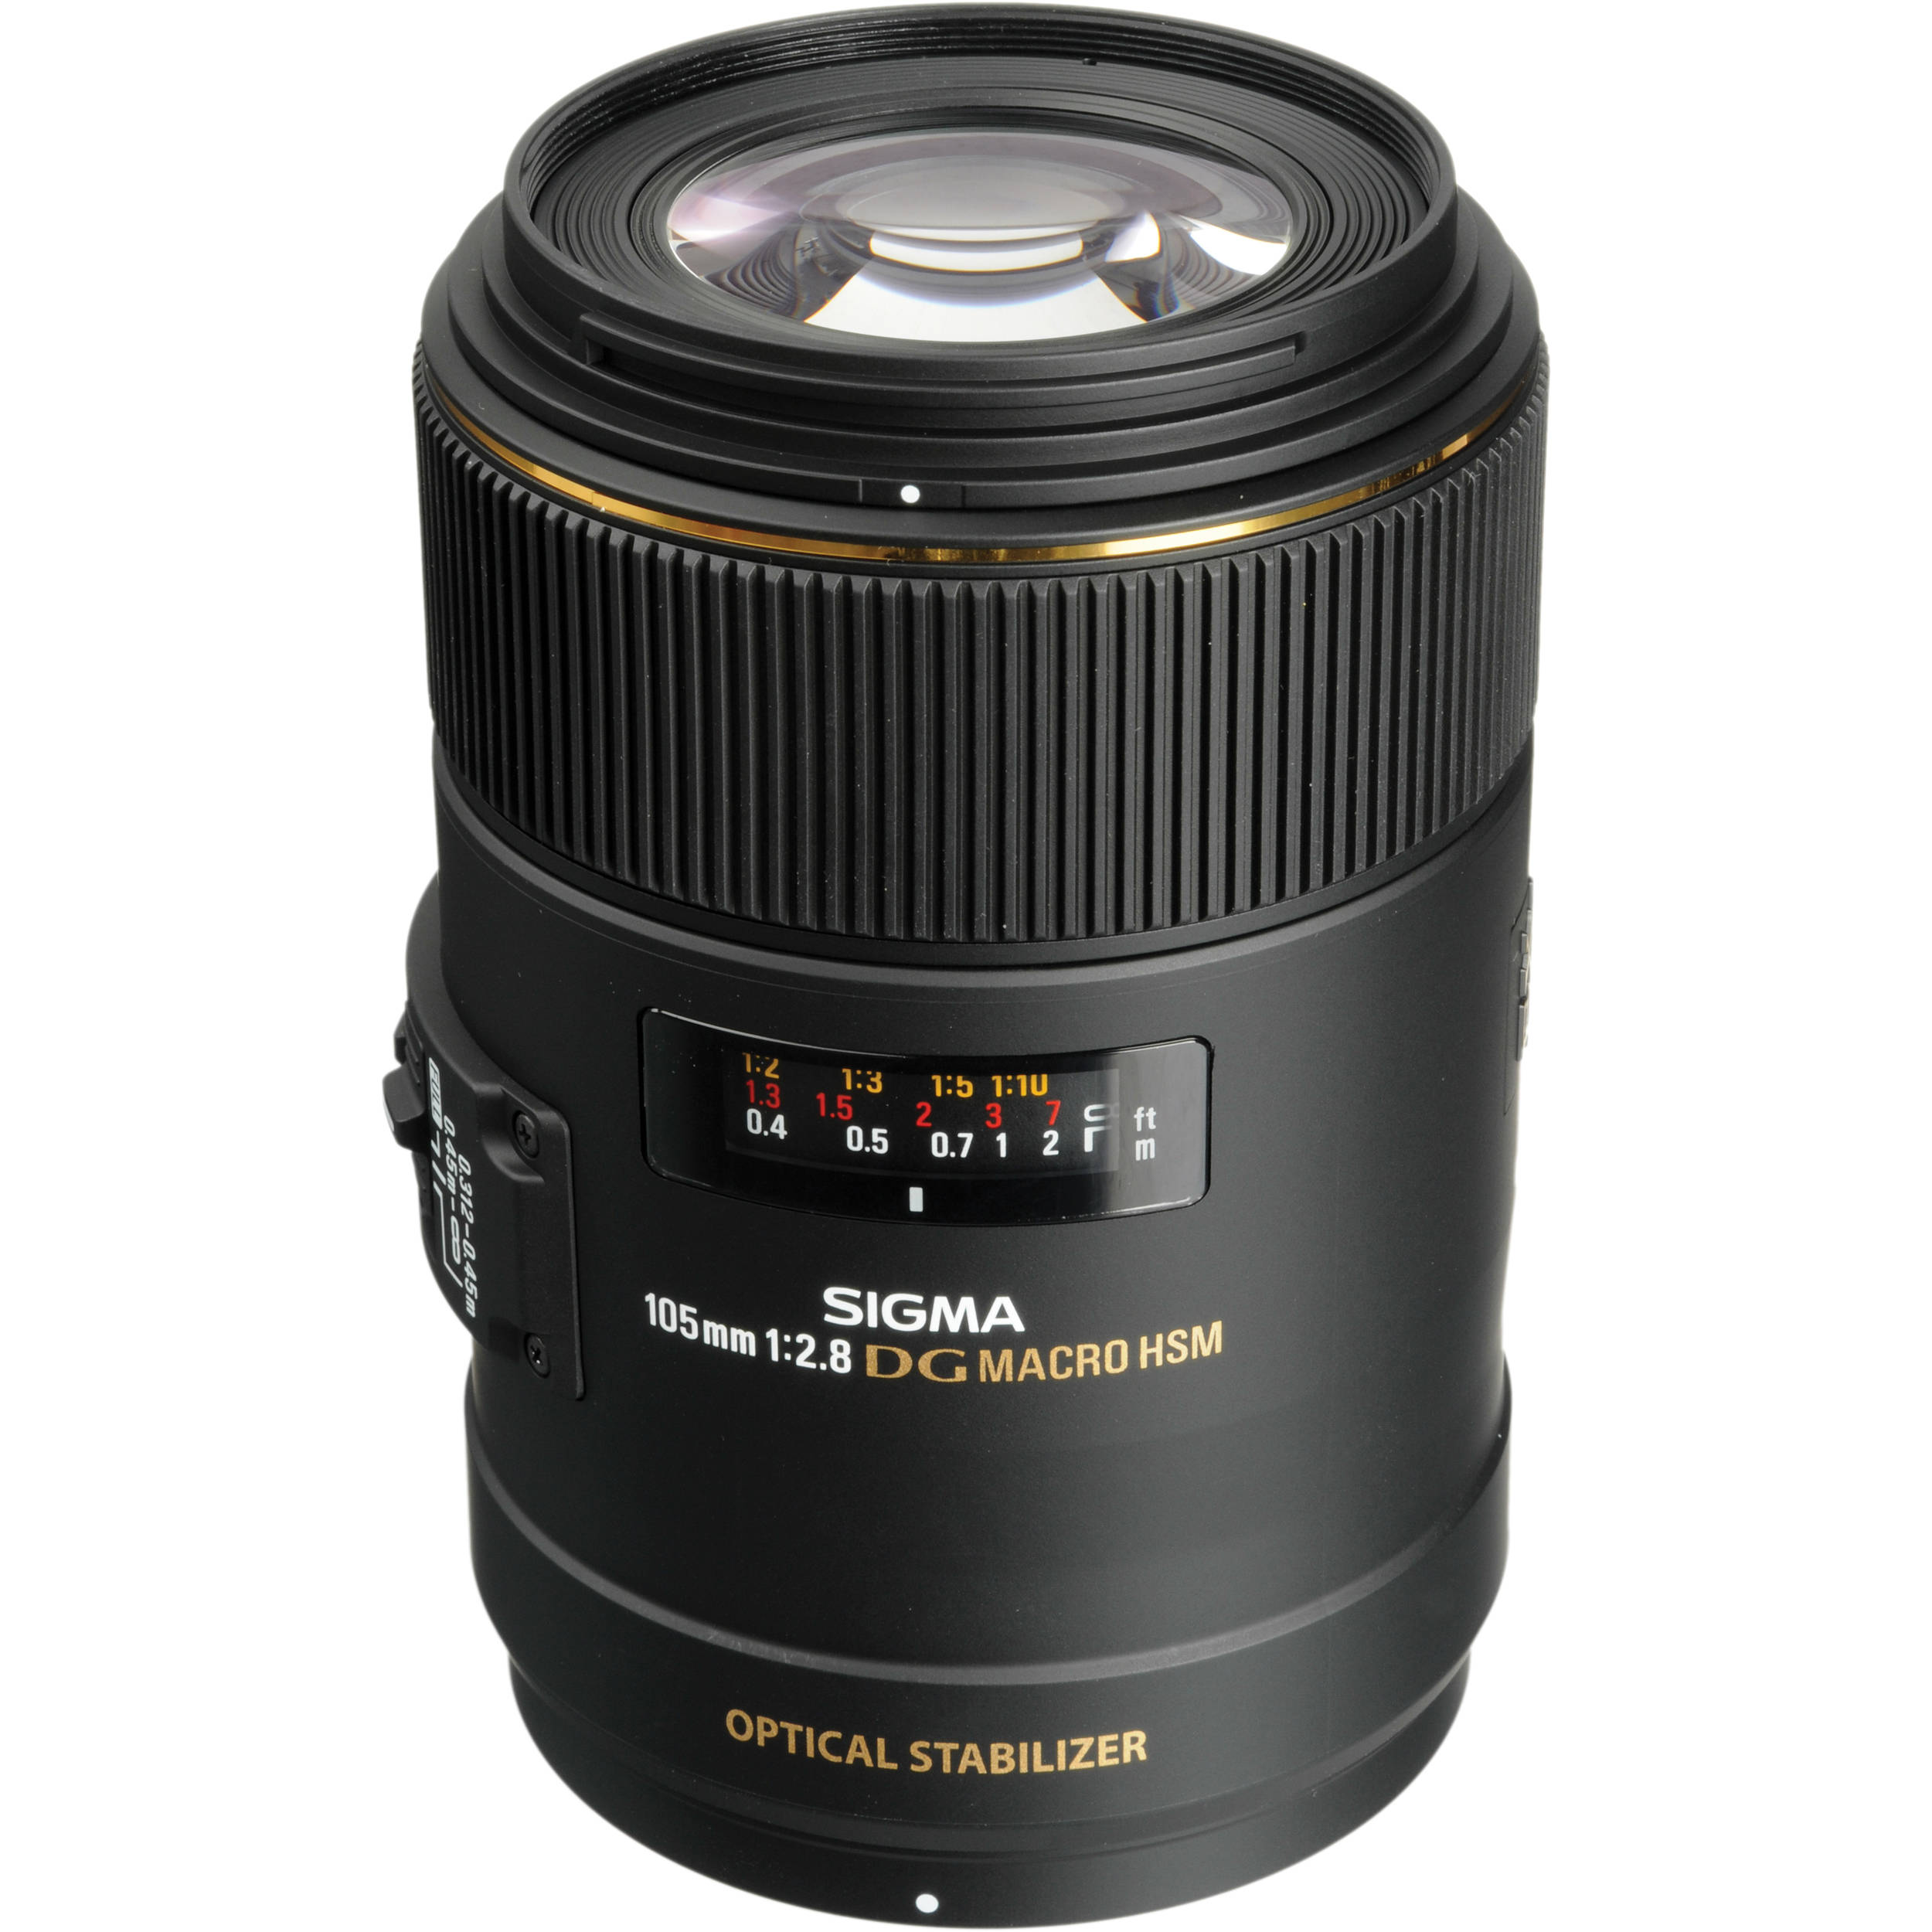 Best Lens For Dog Photography